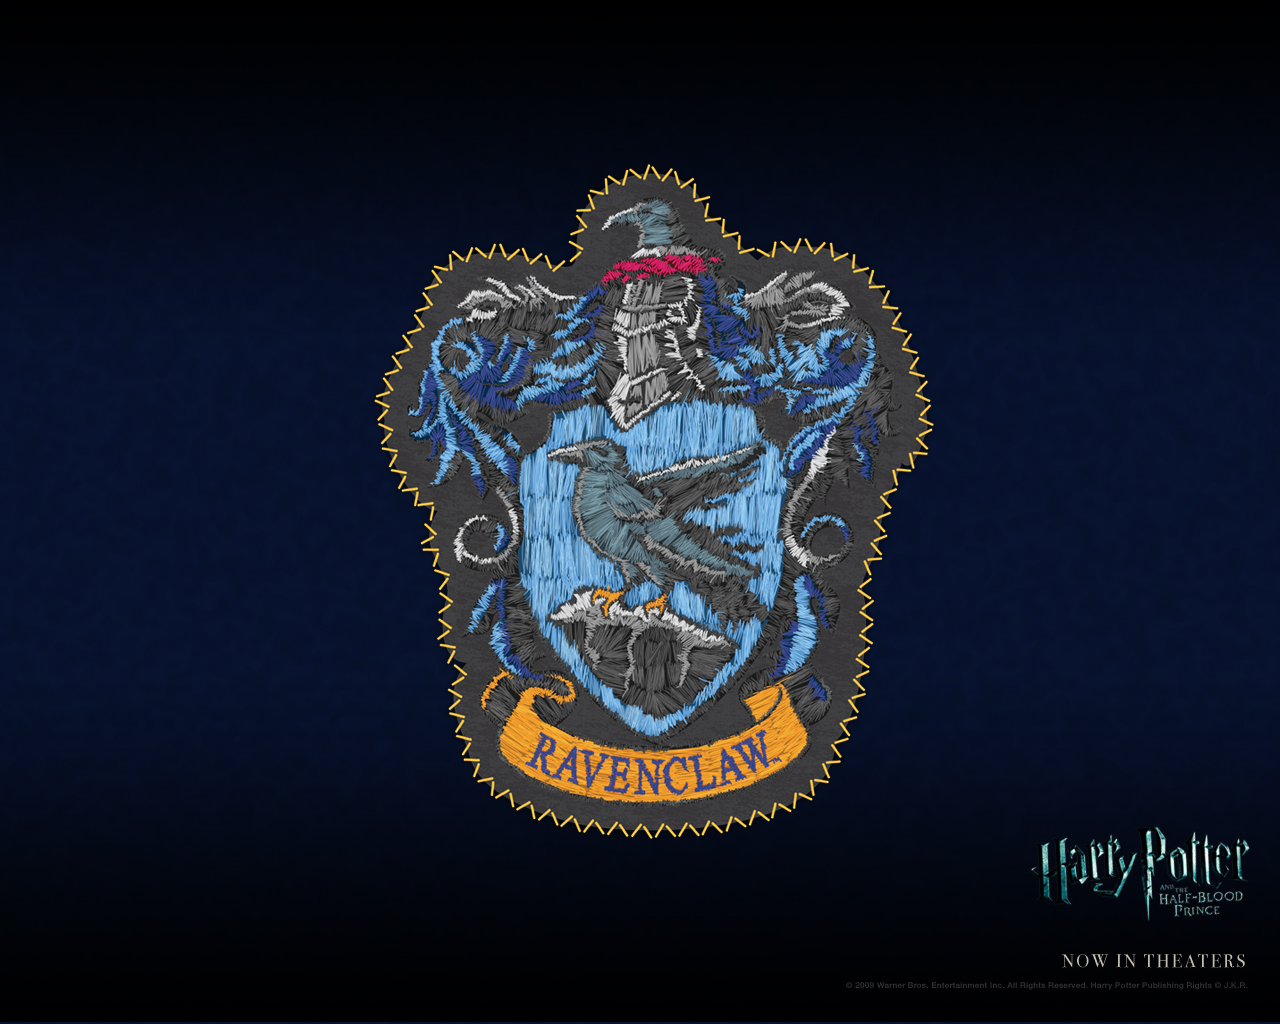 Top Wallpaper Mobile Harry Potter - OgJhX2  You Should Have_511006.jpg